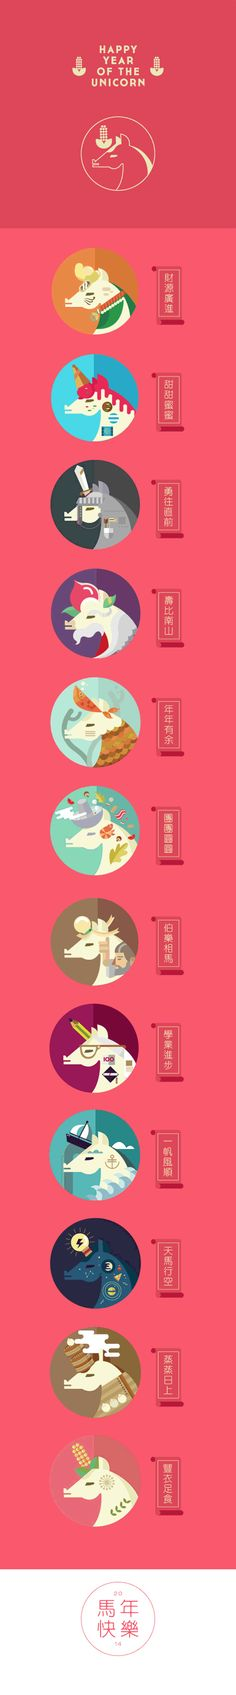 Year Of The Unicorn by Valen Lim Chong Chin | A Chinese New Year Illustration